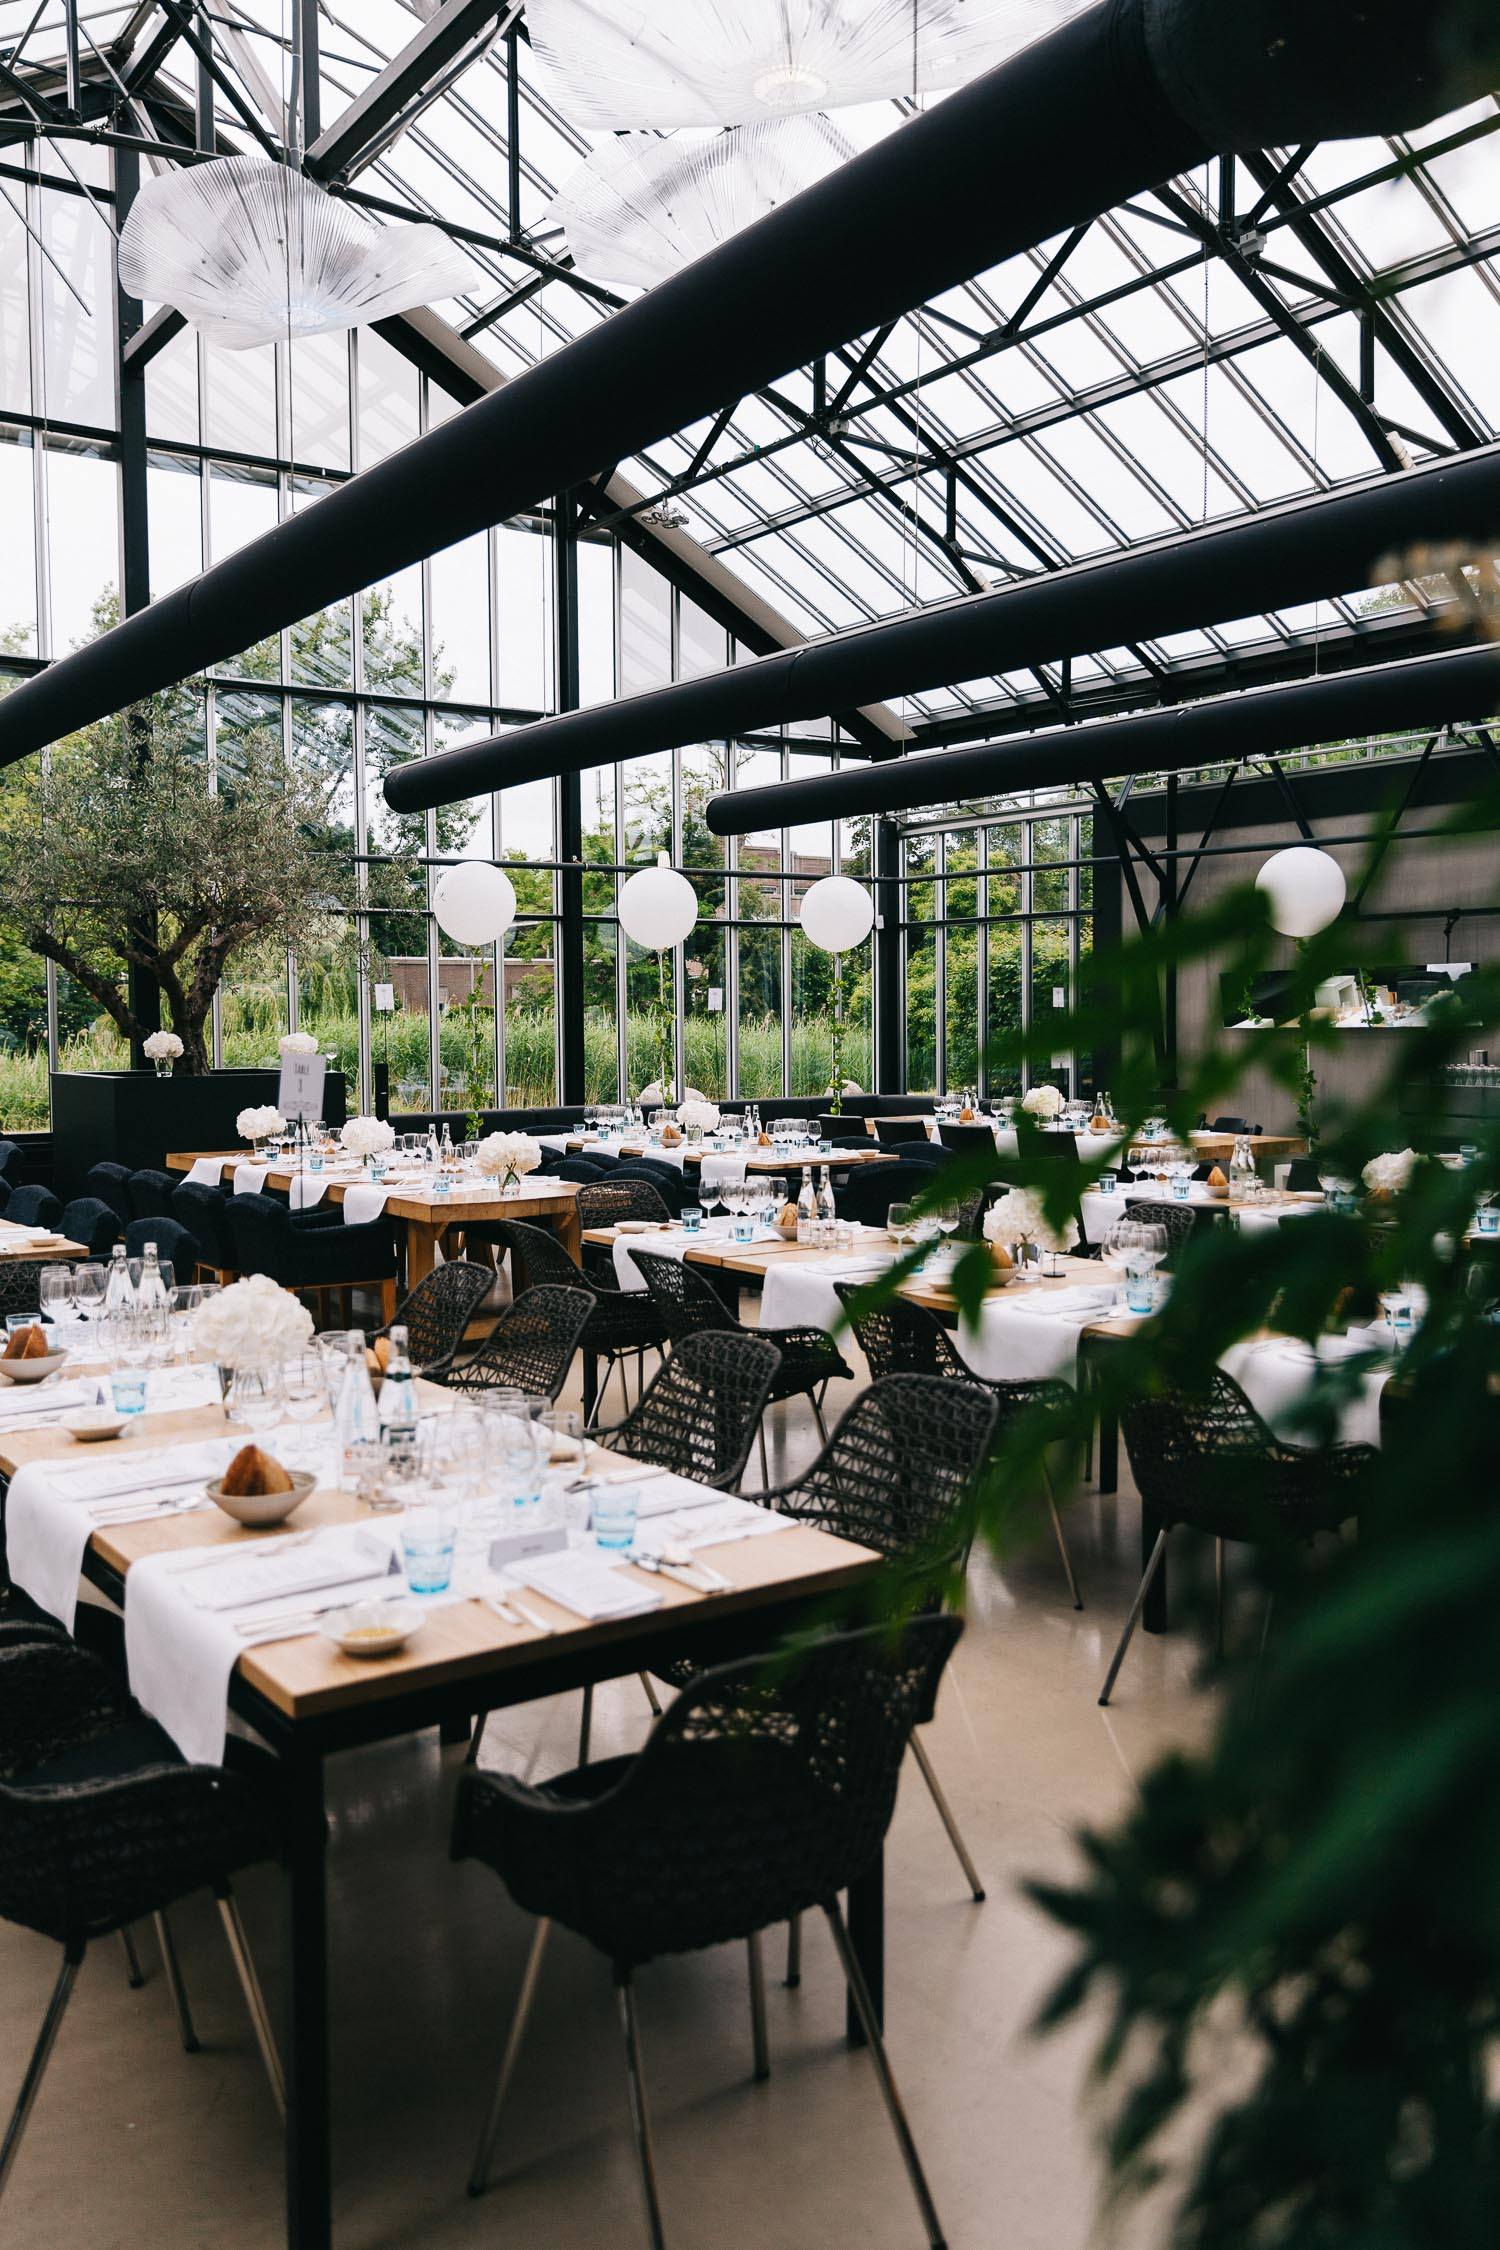 Urban-green-greenhouse-wedding-Ilina-and-james-restaurant-De-Kas-Amsterdam-by-On-a-hazy-morning-92.jpg